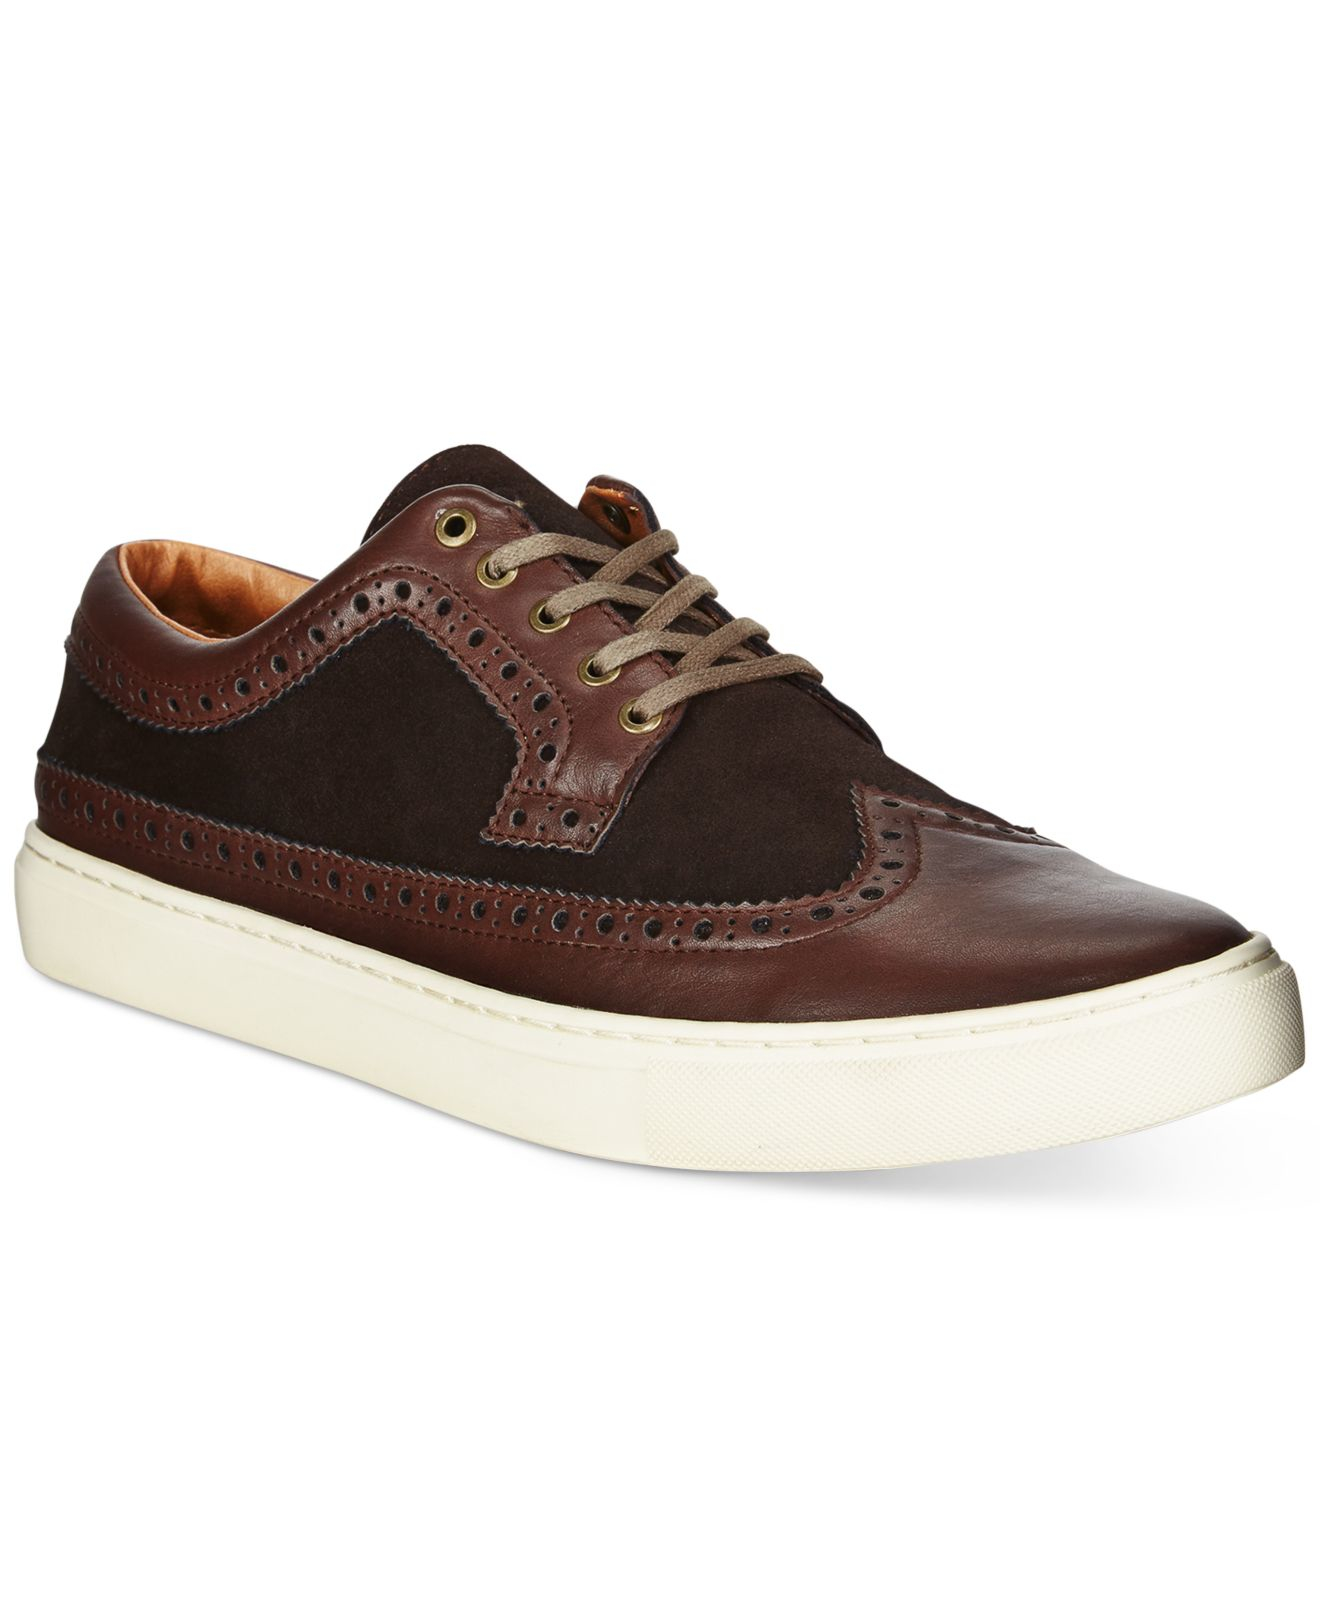 tommy hilfiger macon sneakers in brown for men lyst. Black Bedroom Furniture Sets. Home Design Ideas